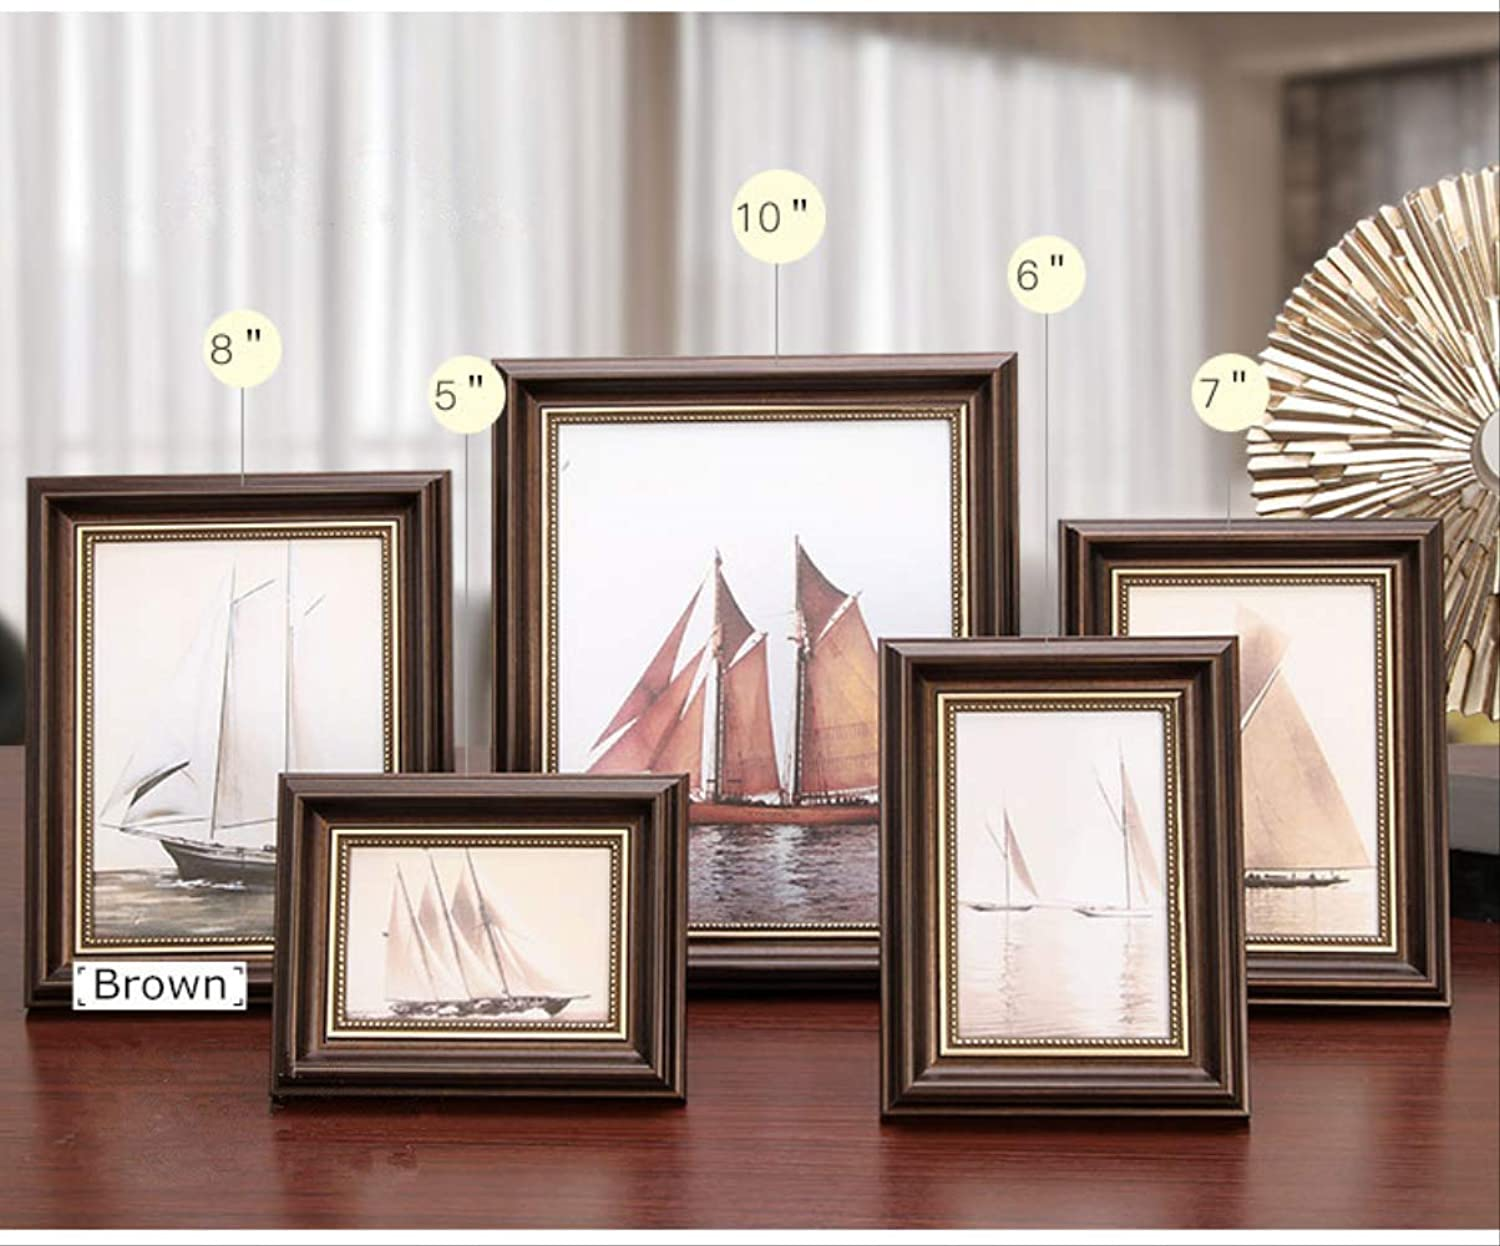 YKDDII Picture Frames golden Stroke Photo Frame For Home Decor 1 Pcs Quality Table&wall Picture Frames Art Frames Classic Fashion Multifunction Photo Frame